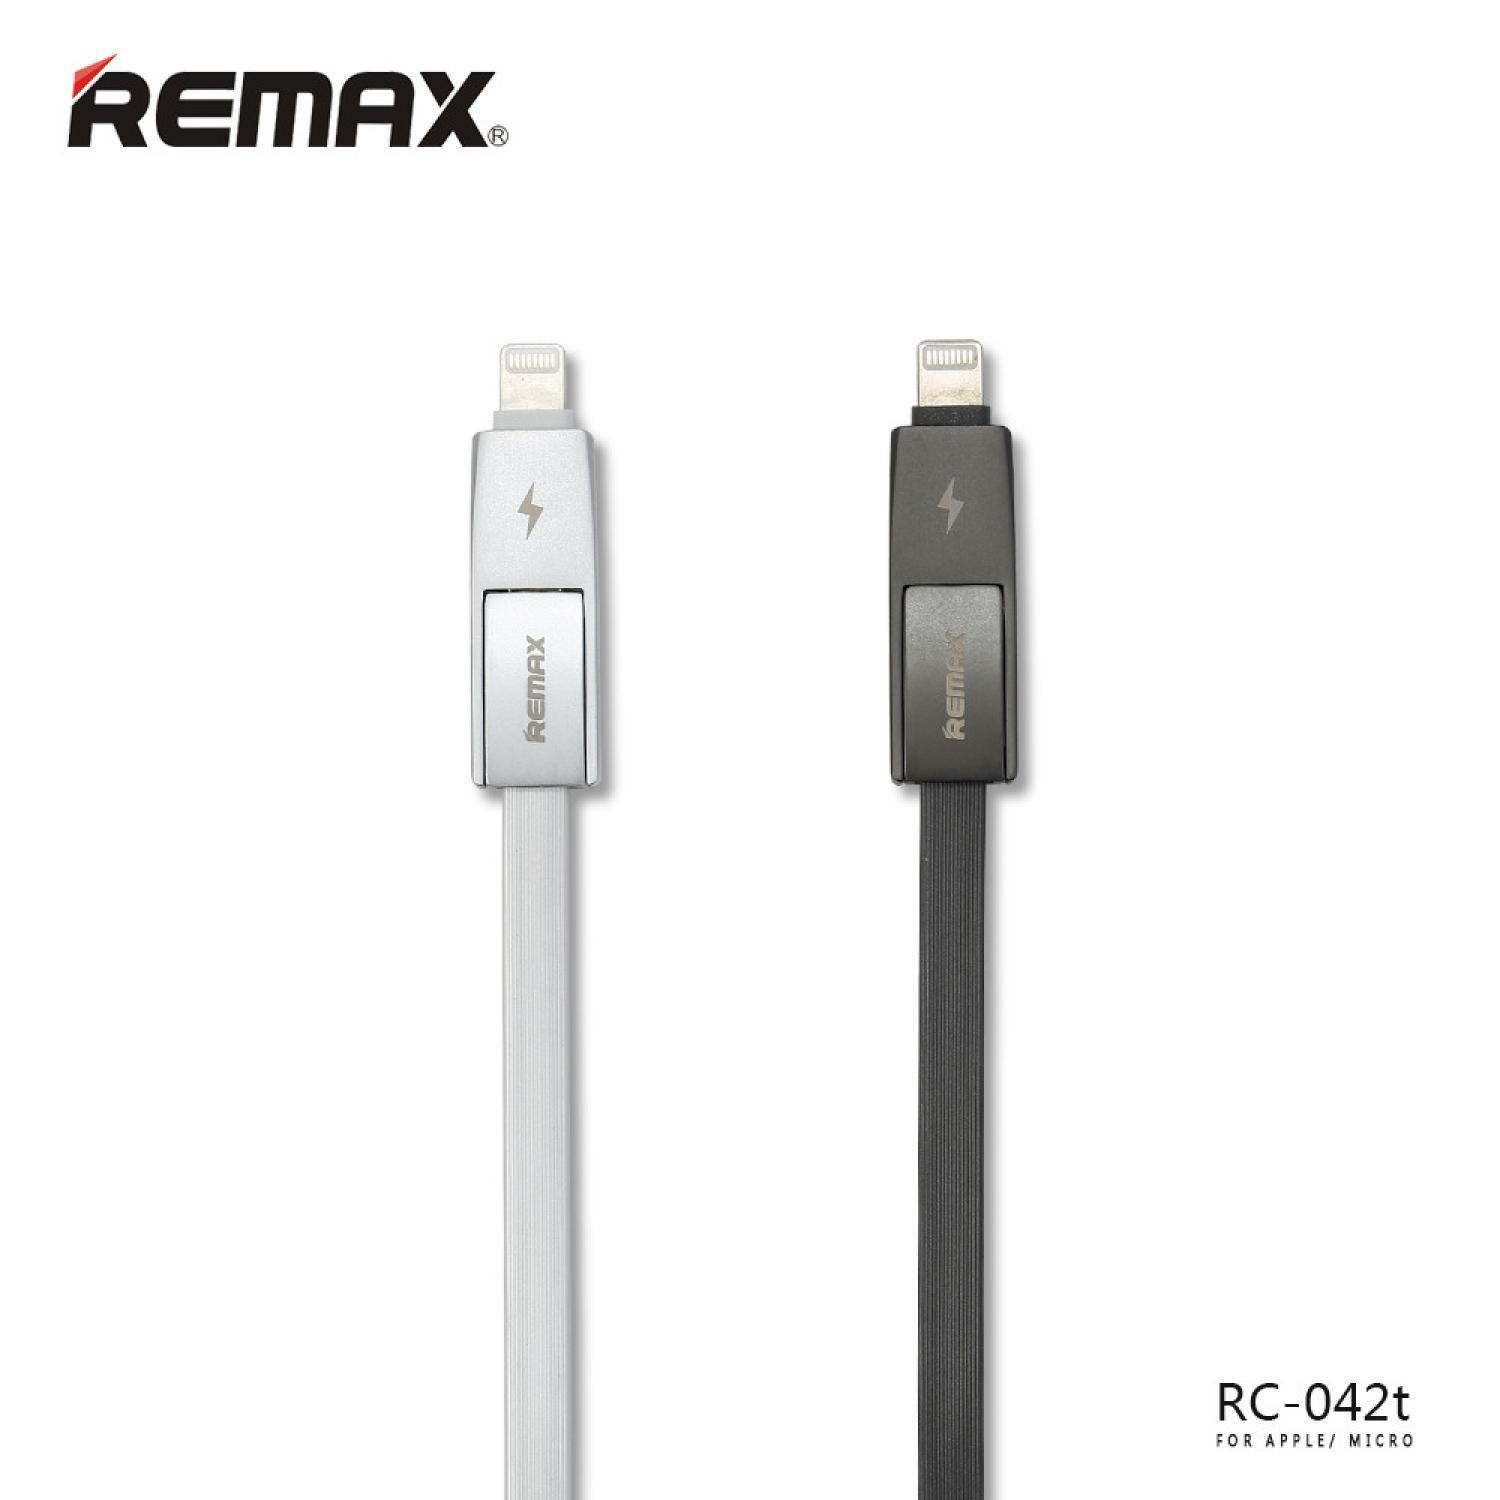 Remax Strive High Speed 2 in 1 Micro Usb / Lightning Cable for Smartphone and iPhone 5/6 - RC-042t / Micro Usb RC-042T / Kabel USB anti oksidan dan timah / Charger Kabel / Kabel charging berbentuk noodle / cas smartphone / iPhone